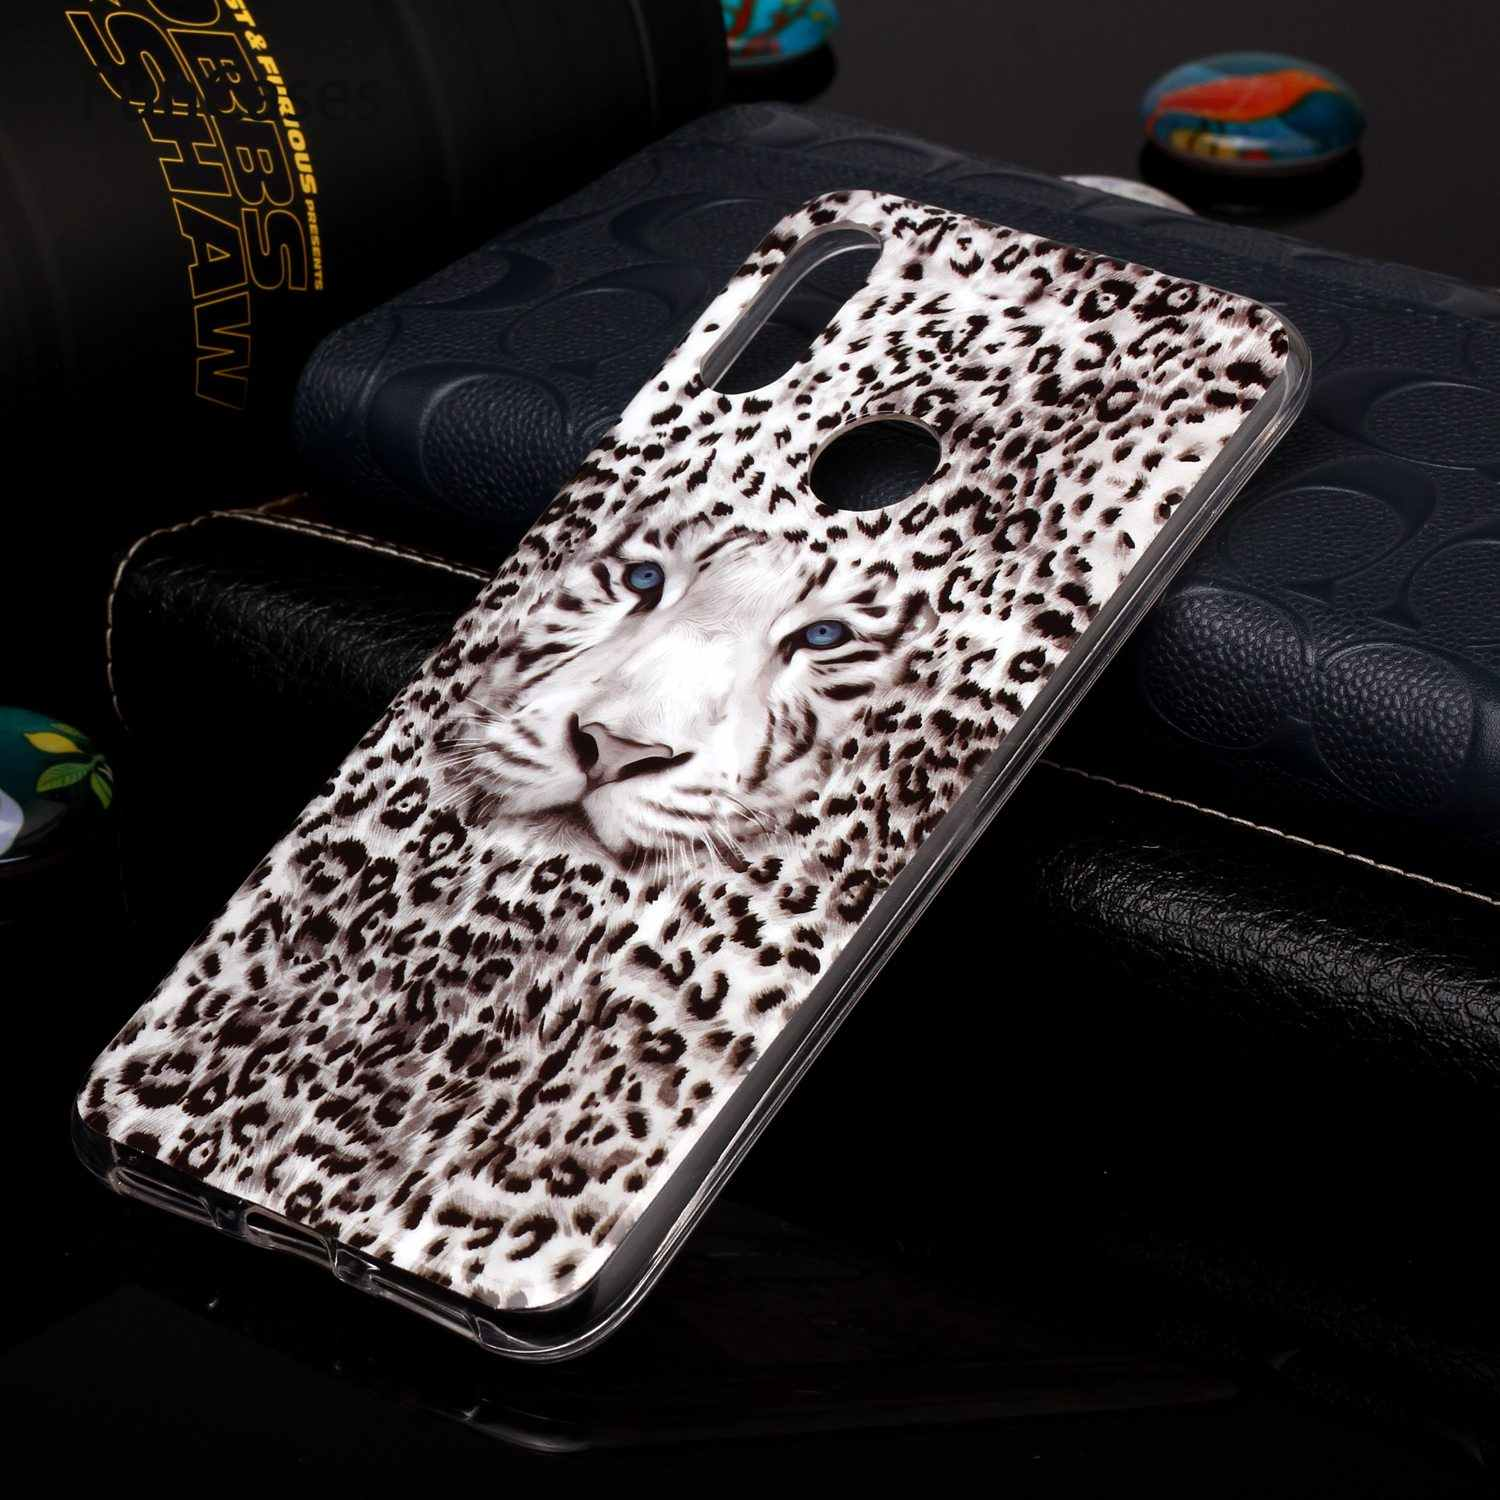 Funda abatible con patrones de flores para apple iphone 5 S cuero PU + funda de silicona para iphone 5 s/iphone 5 coque Fundas Capa